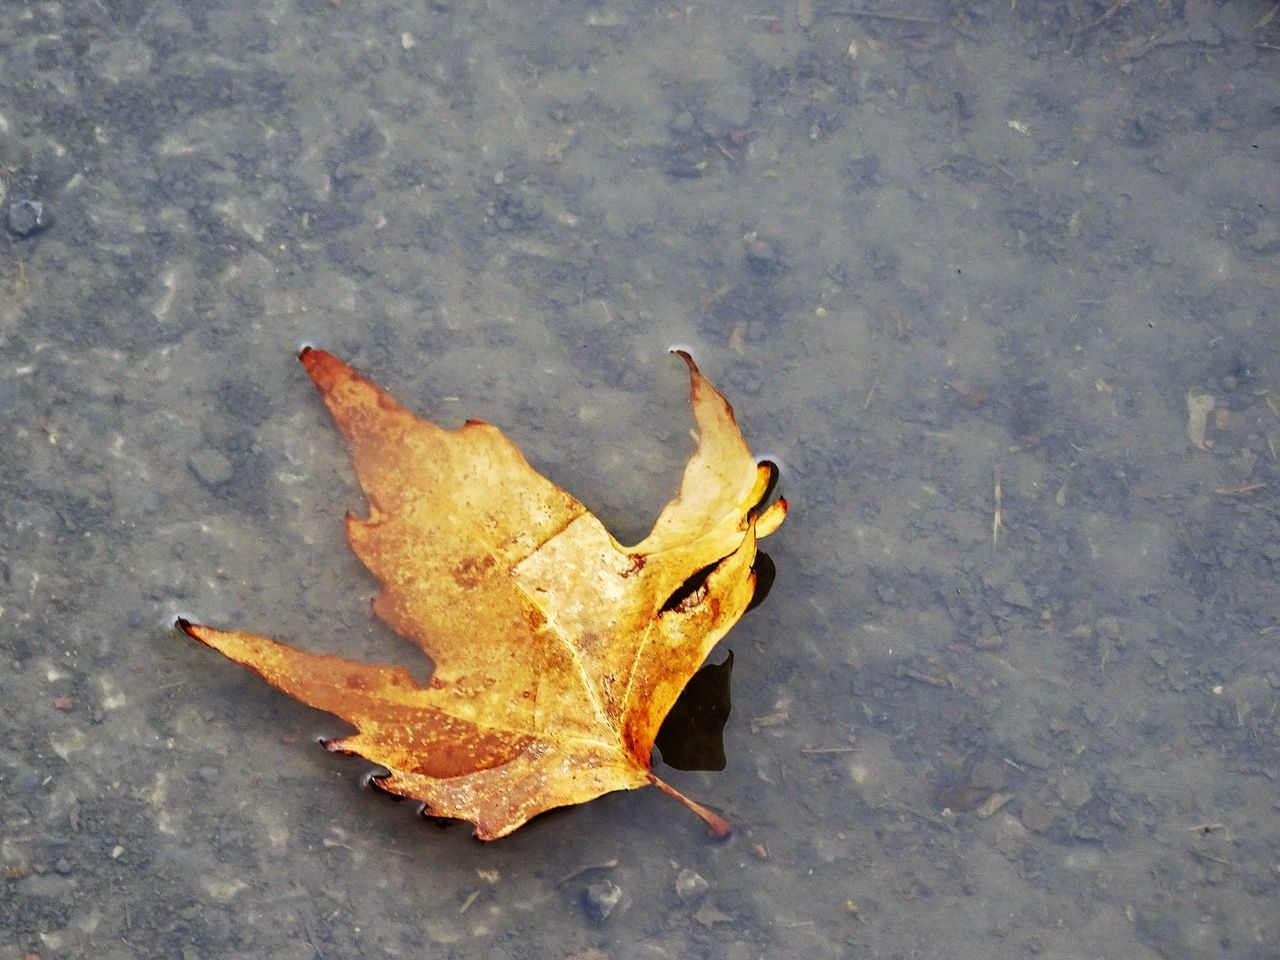 autumn, leaf, change, dry, maple, high angle view, fallen, maple leaf, outdoors, no people, day, nature, street, close-up, fragility